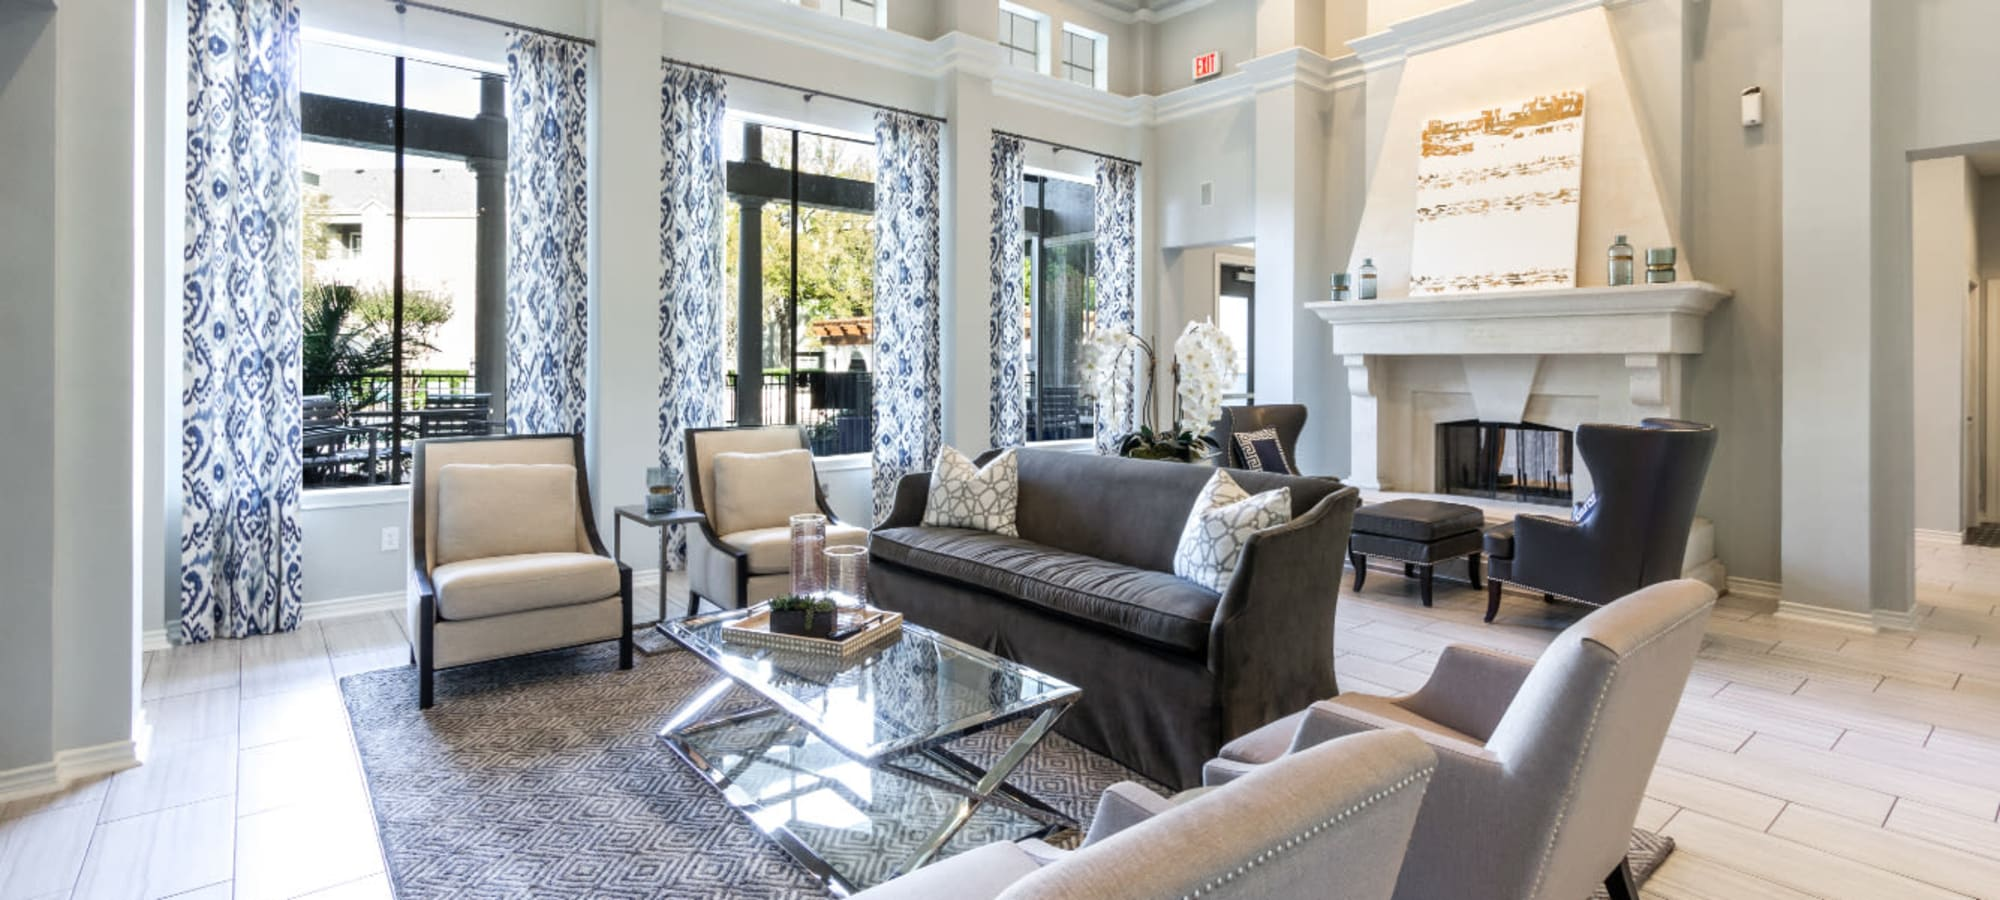 Connect with Marquis at Stonegate in Fort Worth, Texas